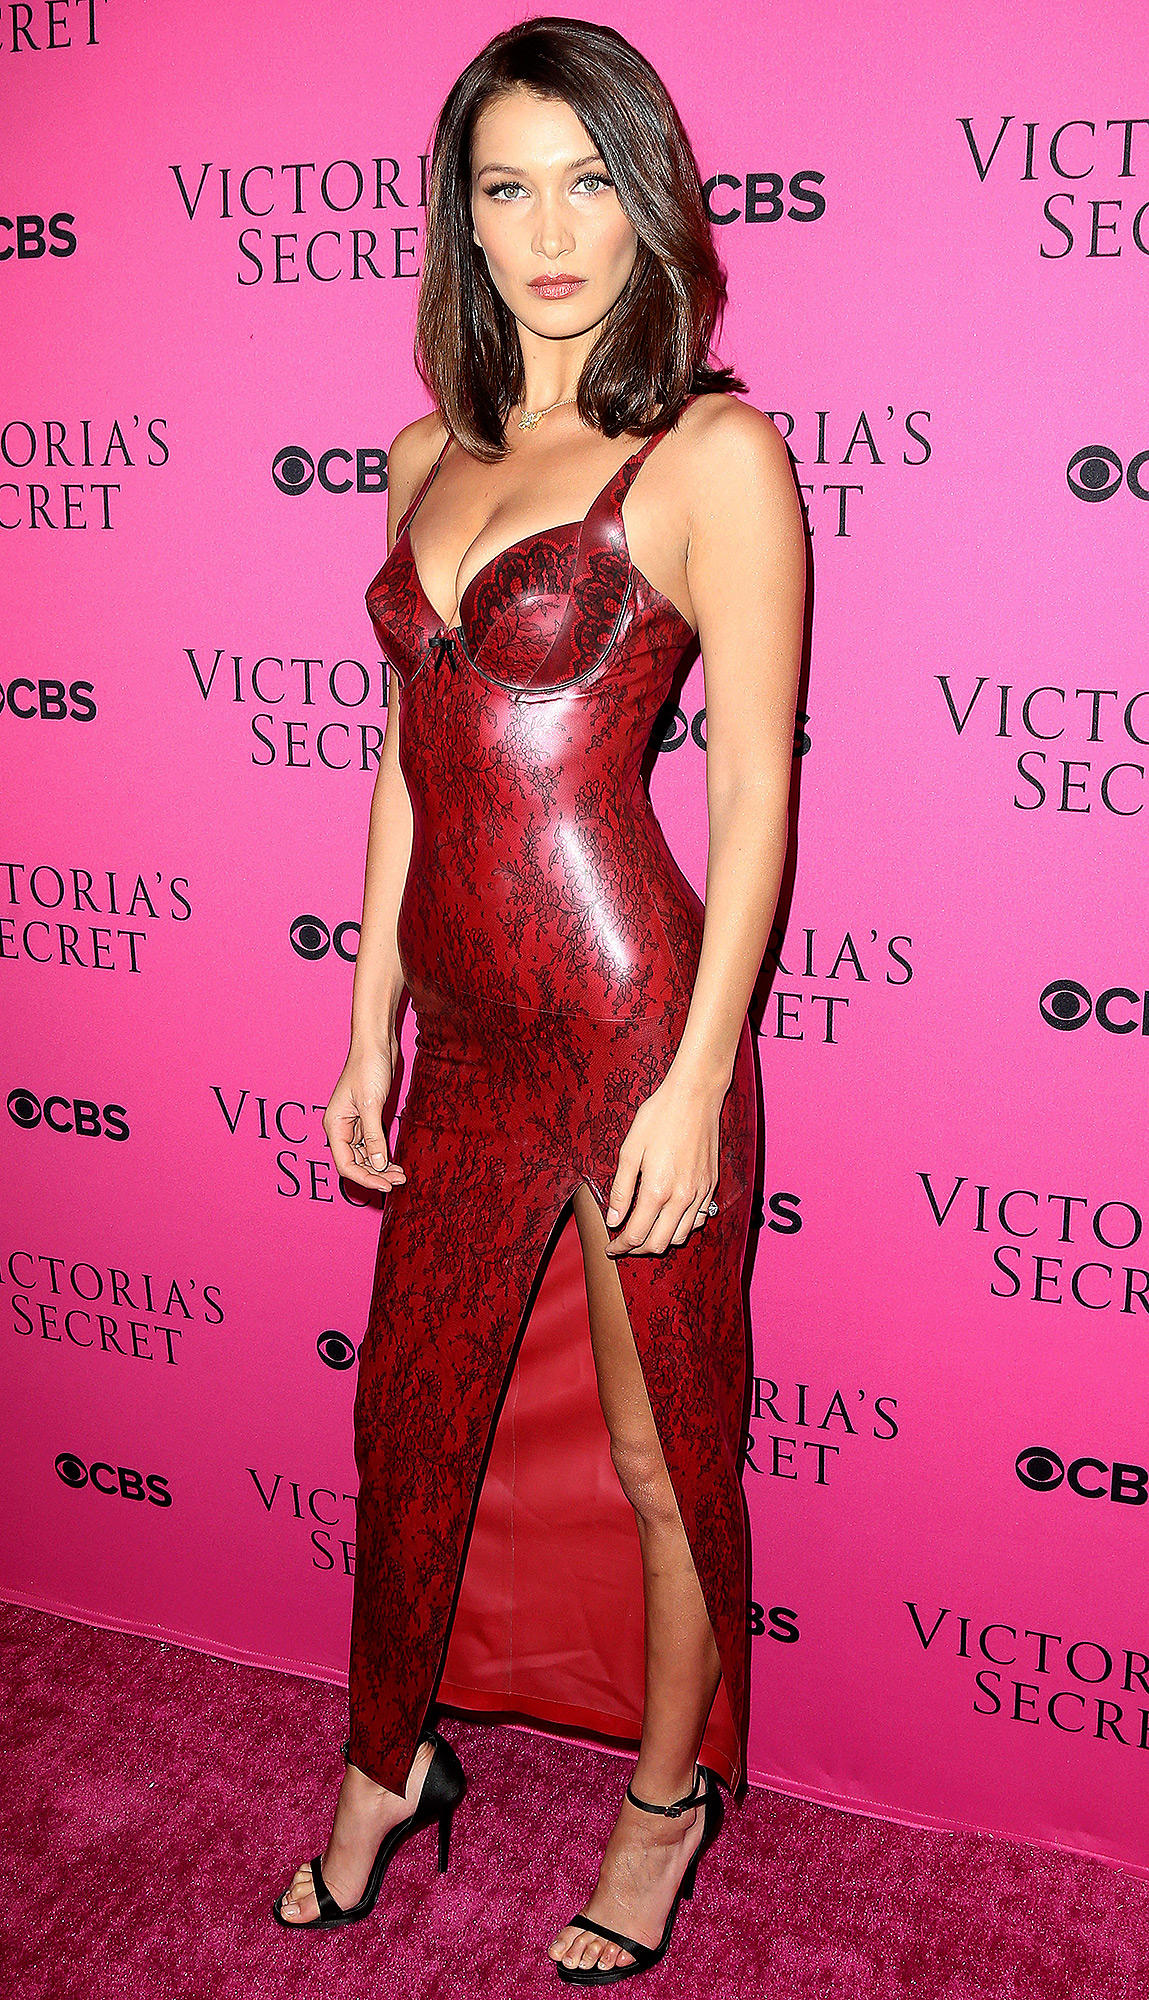 Victoria's Secret Fashion Show viewing party, Arrivals, New York, USA - 28 Nov 2017